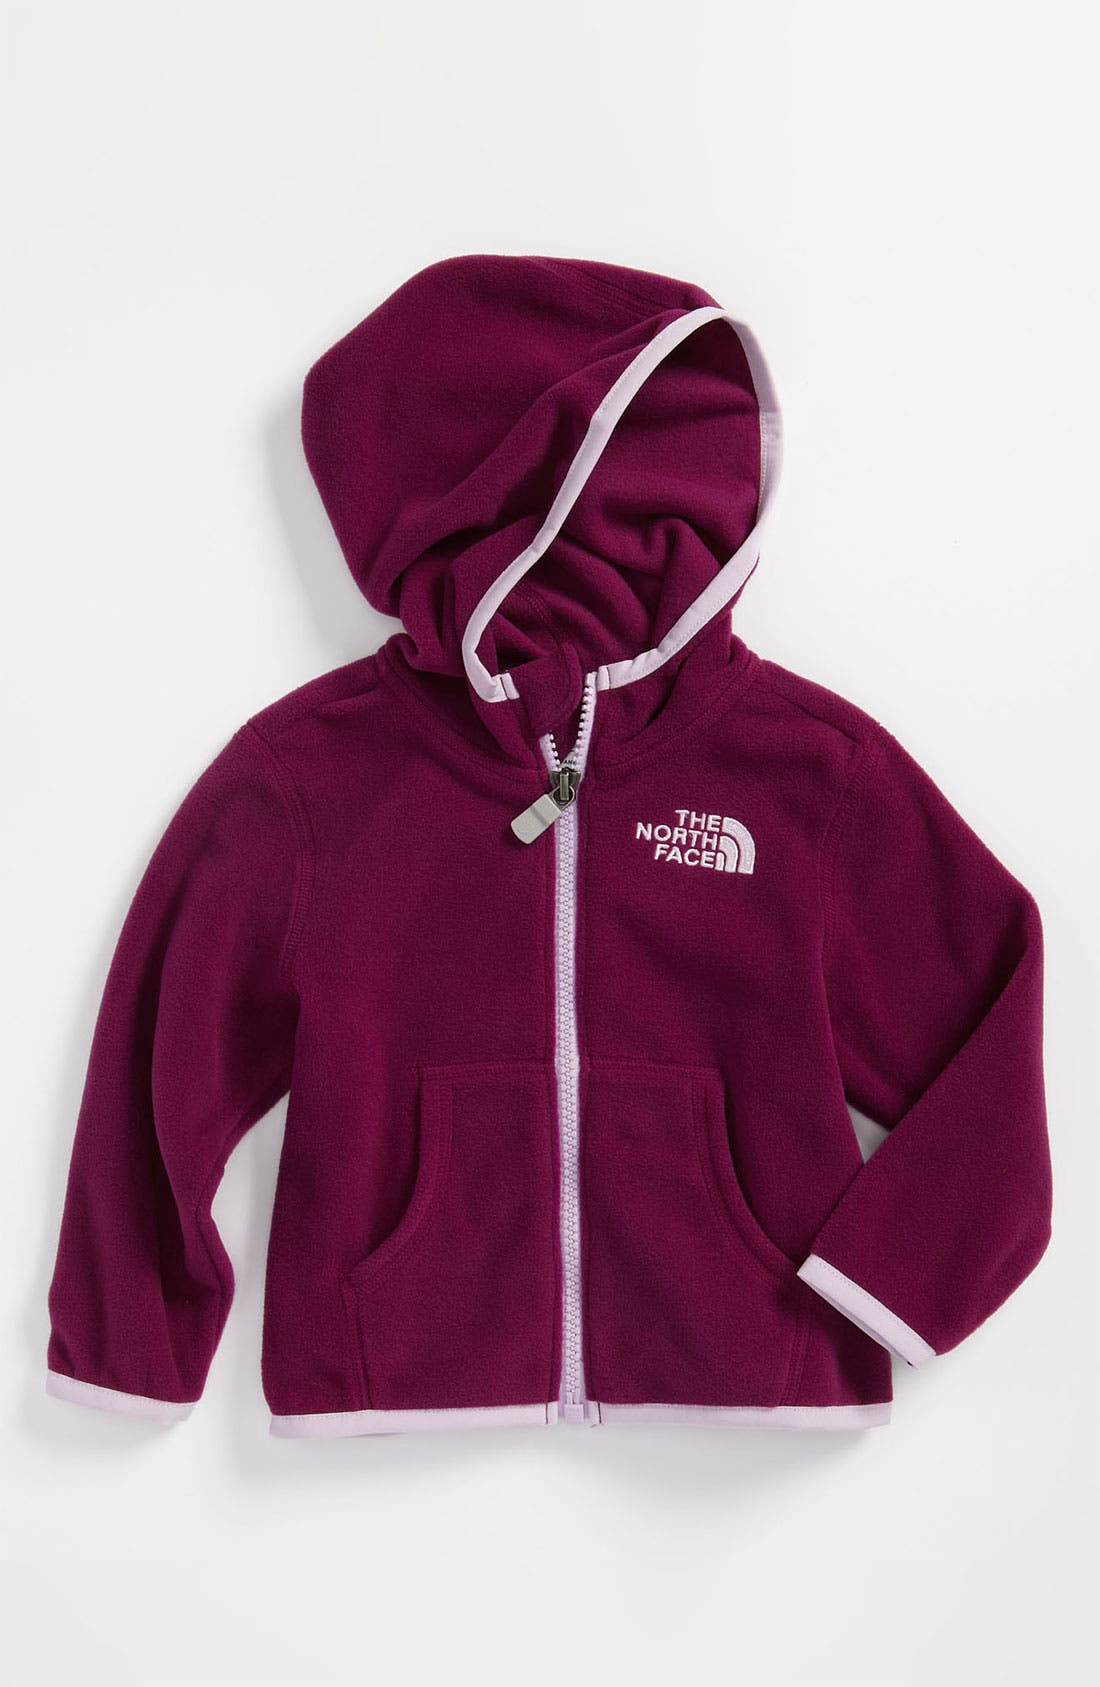 Alternate Image 1 Selected - The North Face 'Glacier' Fleece Jacket (Baby)